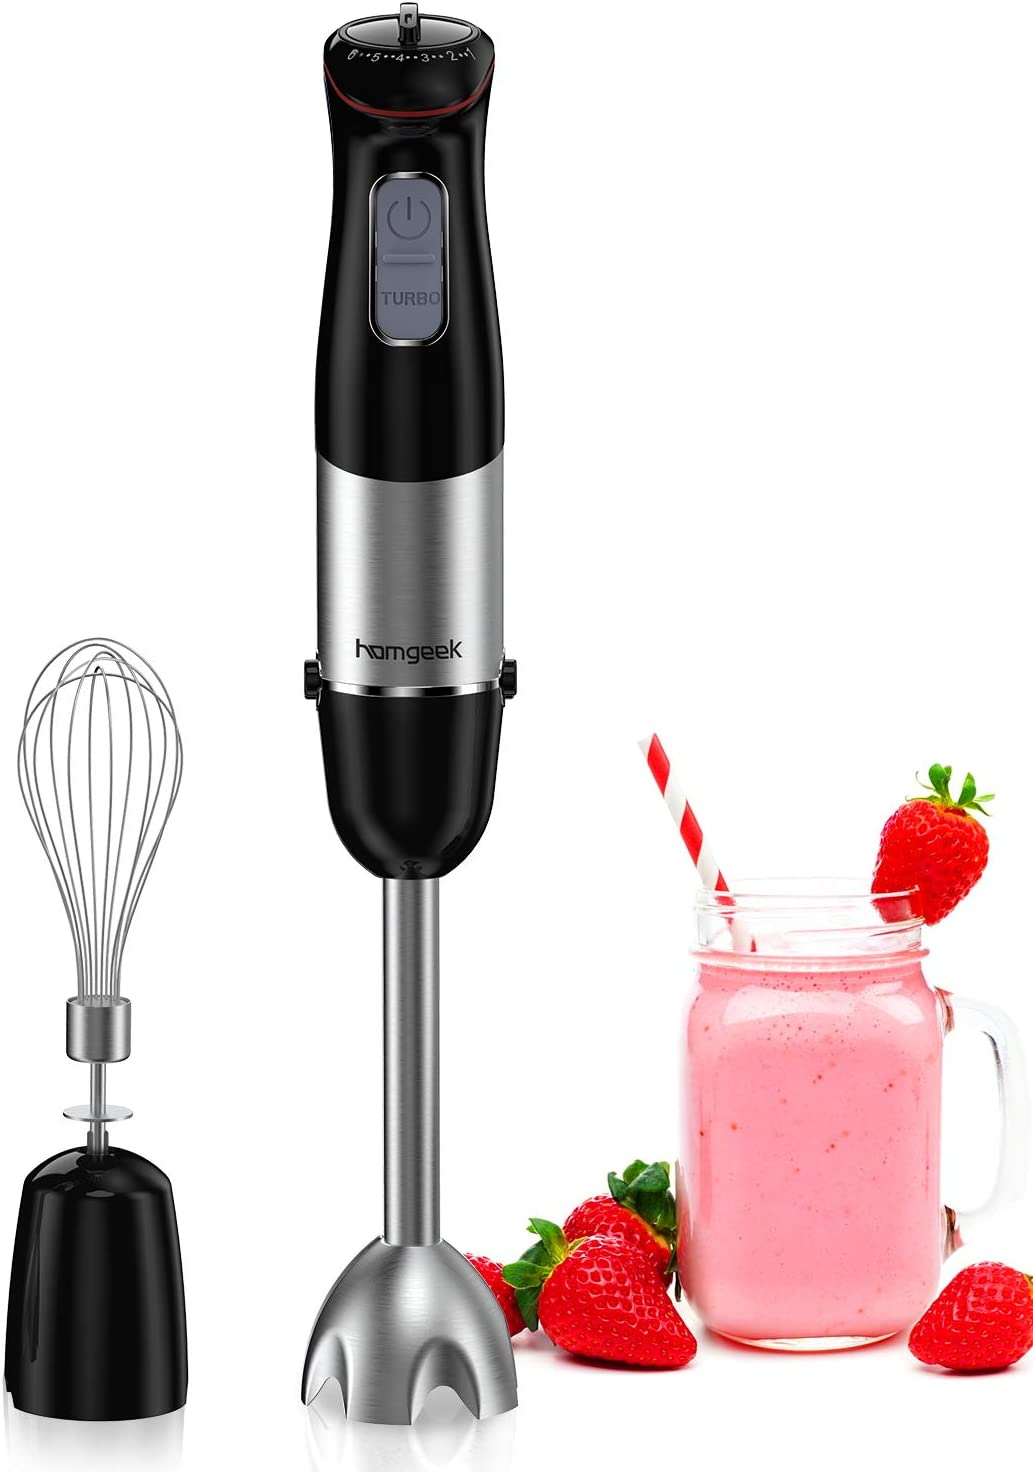 homgeek Immersion Hand Held Blender 500w 6-Speed, Stainless Steel Emulsion Blender with Egg Beater BPA Free for Hot Soup Sauces Juices Smoothies Puree Infant Food Black